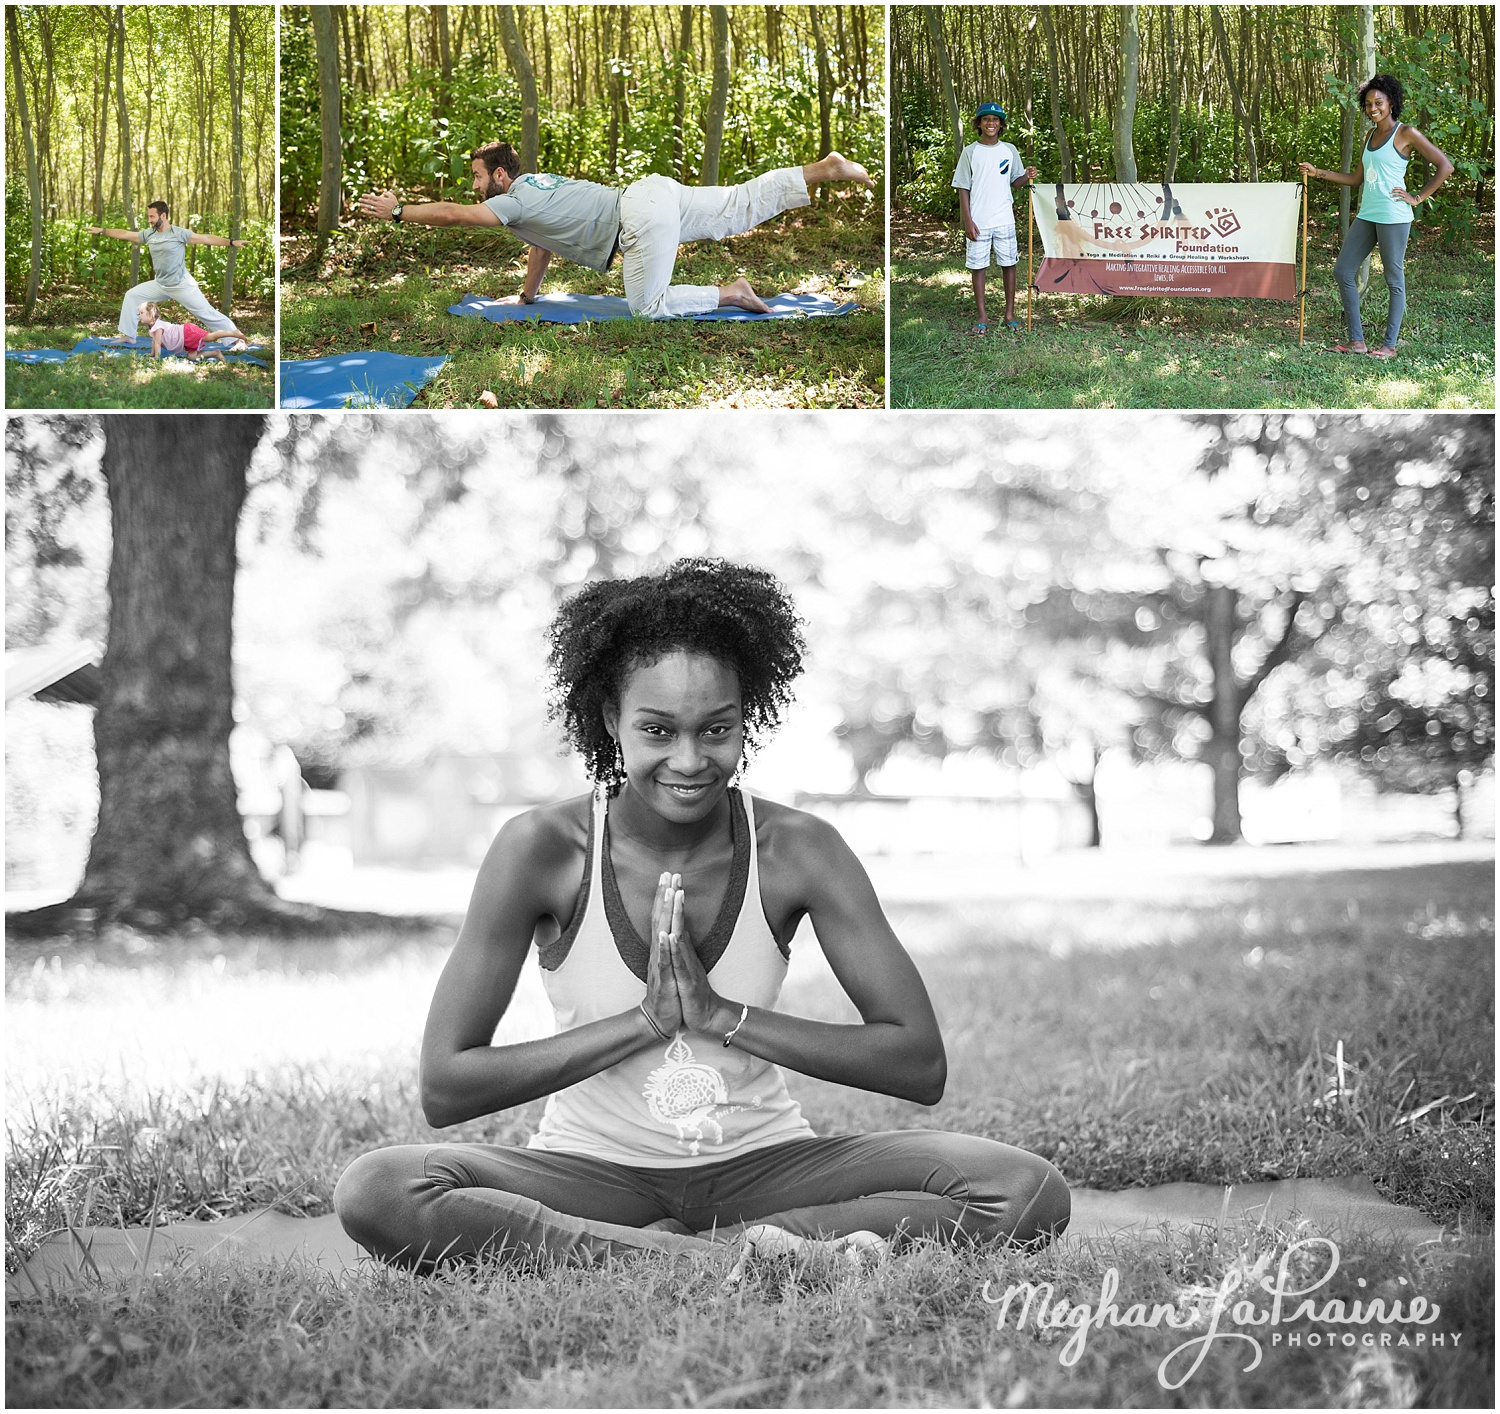 Yoga with Athena:Founder of the Free Spirited Foundation